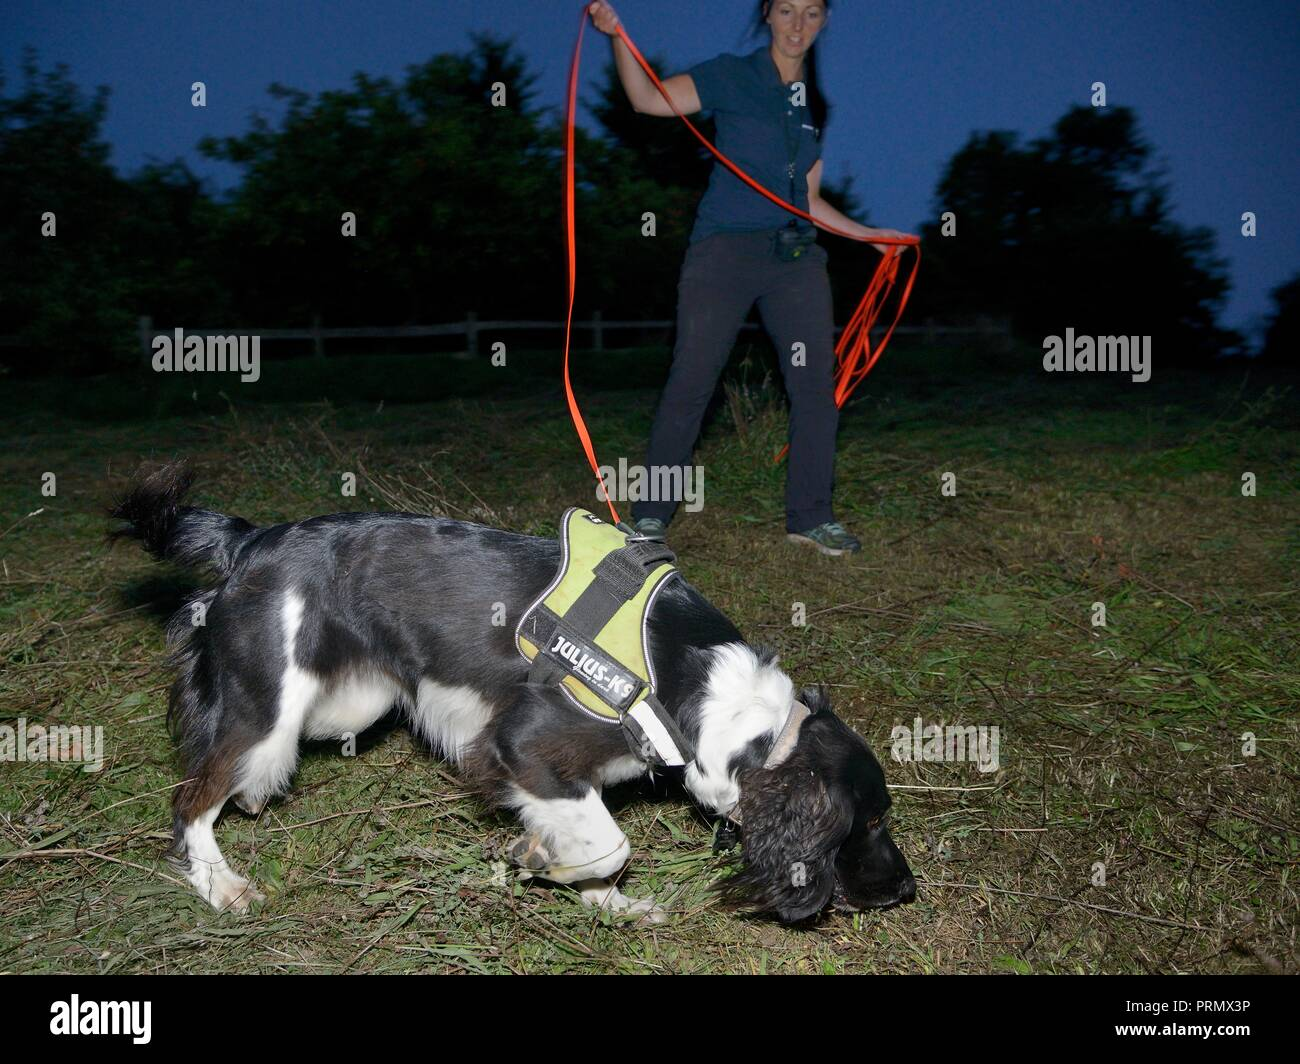 Sniffer dog Freya with Nikki Glover of Wessex Water hunting for Great crested newts (Triturus cristatus) in a meadow after dark, Somerset, UK - Stock Image